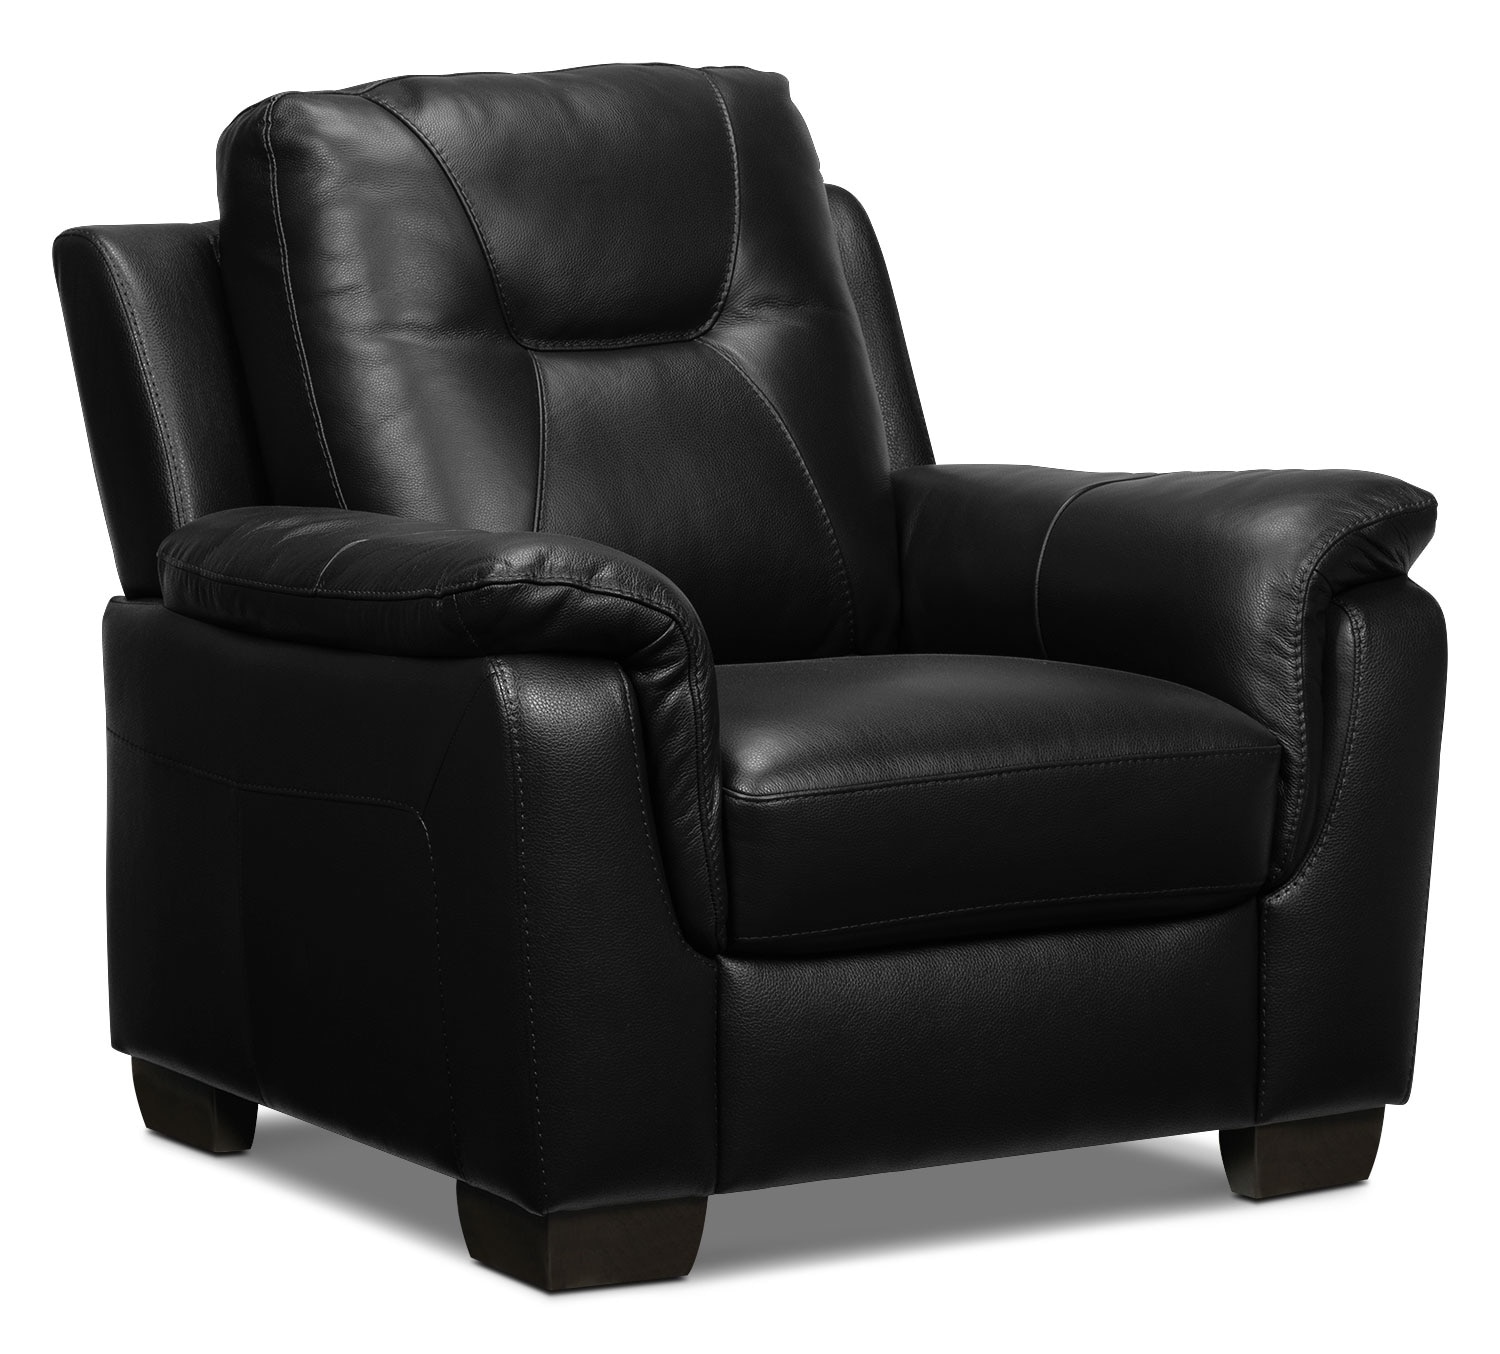 Dalia Chair - Black